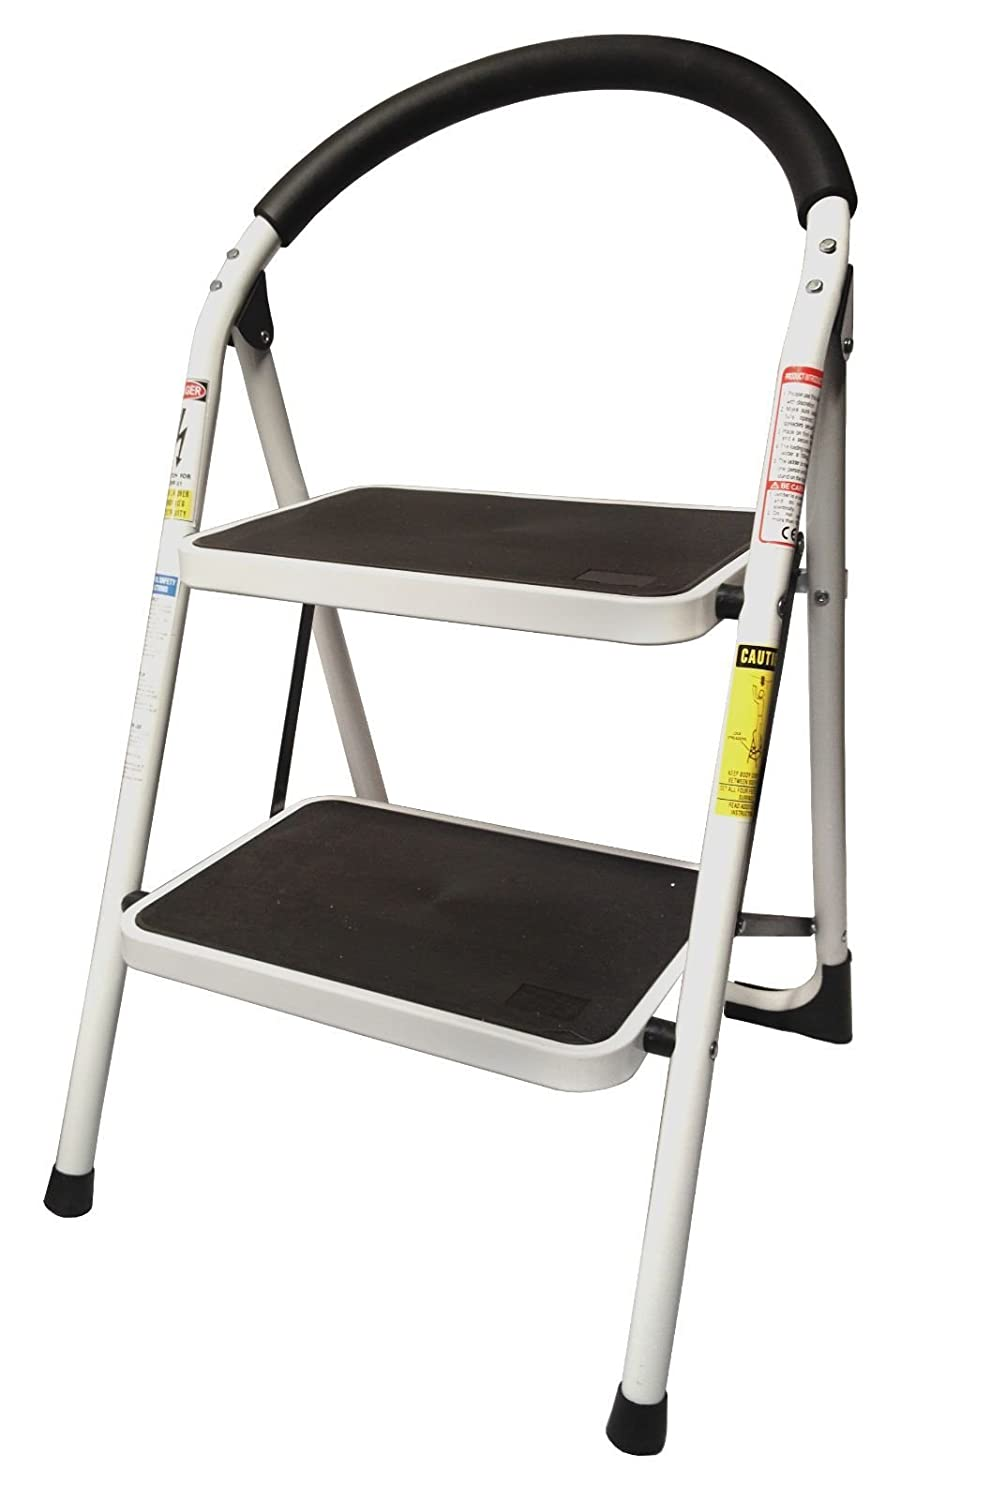 Miraculous Stepup Heavy Duty Steel Reinforced Folding 2 Step Ladder Stool 330 Lbs Capacity Pabps2019 Chair Design Images Pabps2019Com